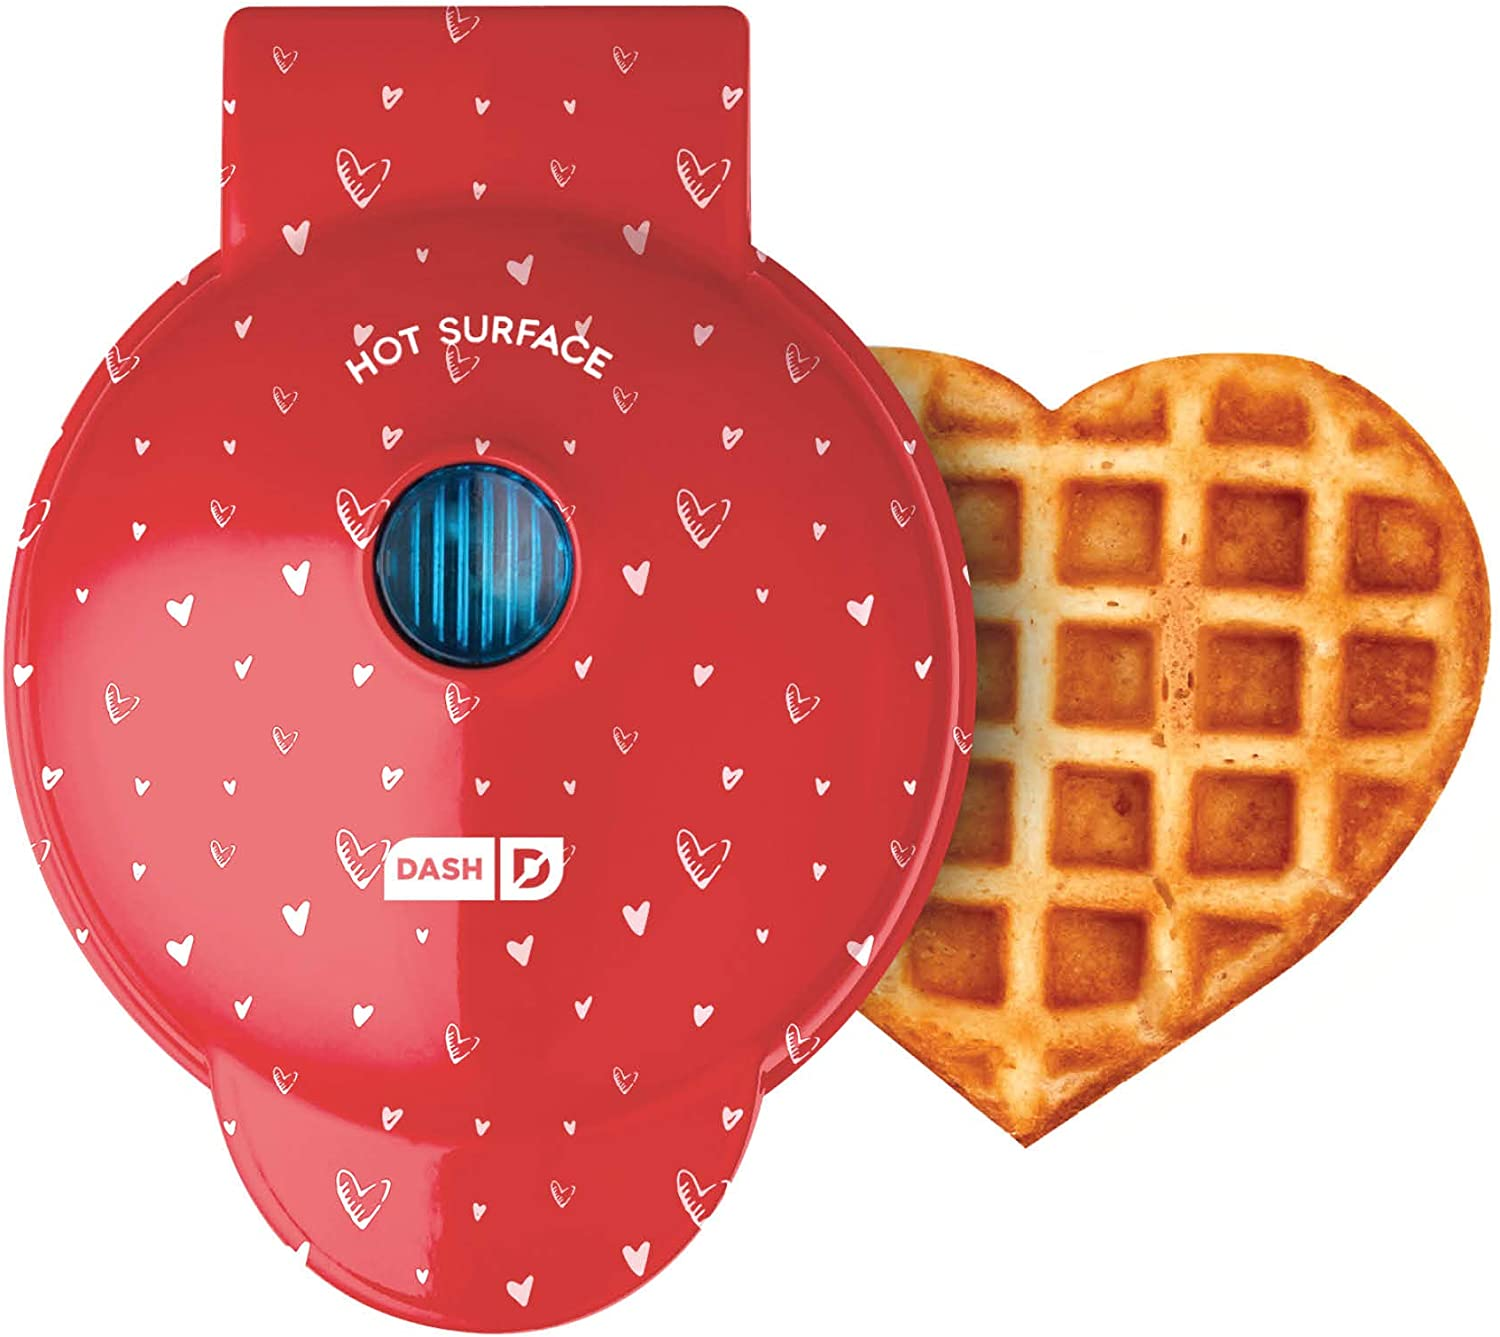 Red Dash waffle maker with heart design and heart-shaped waffle